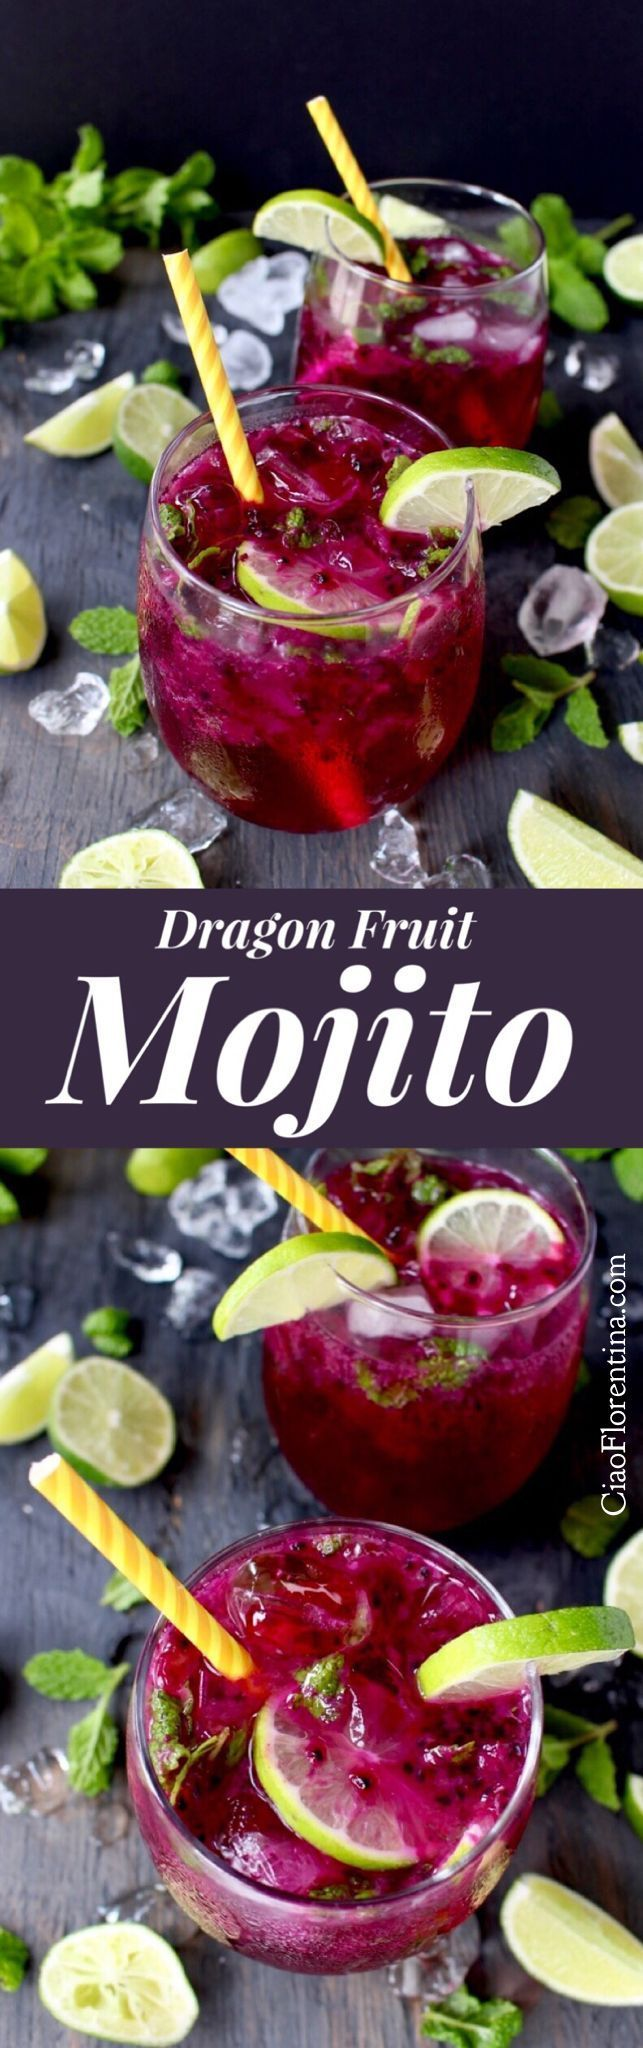 Dragon Fruit Mojito Recipe with Mint and Lime | CiaoFlorentina.com @CiaoFlorentina #mojitorecipes